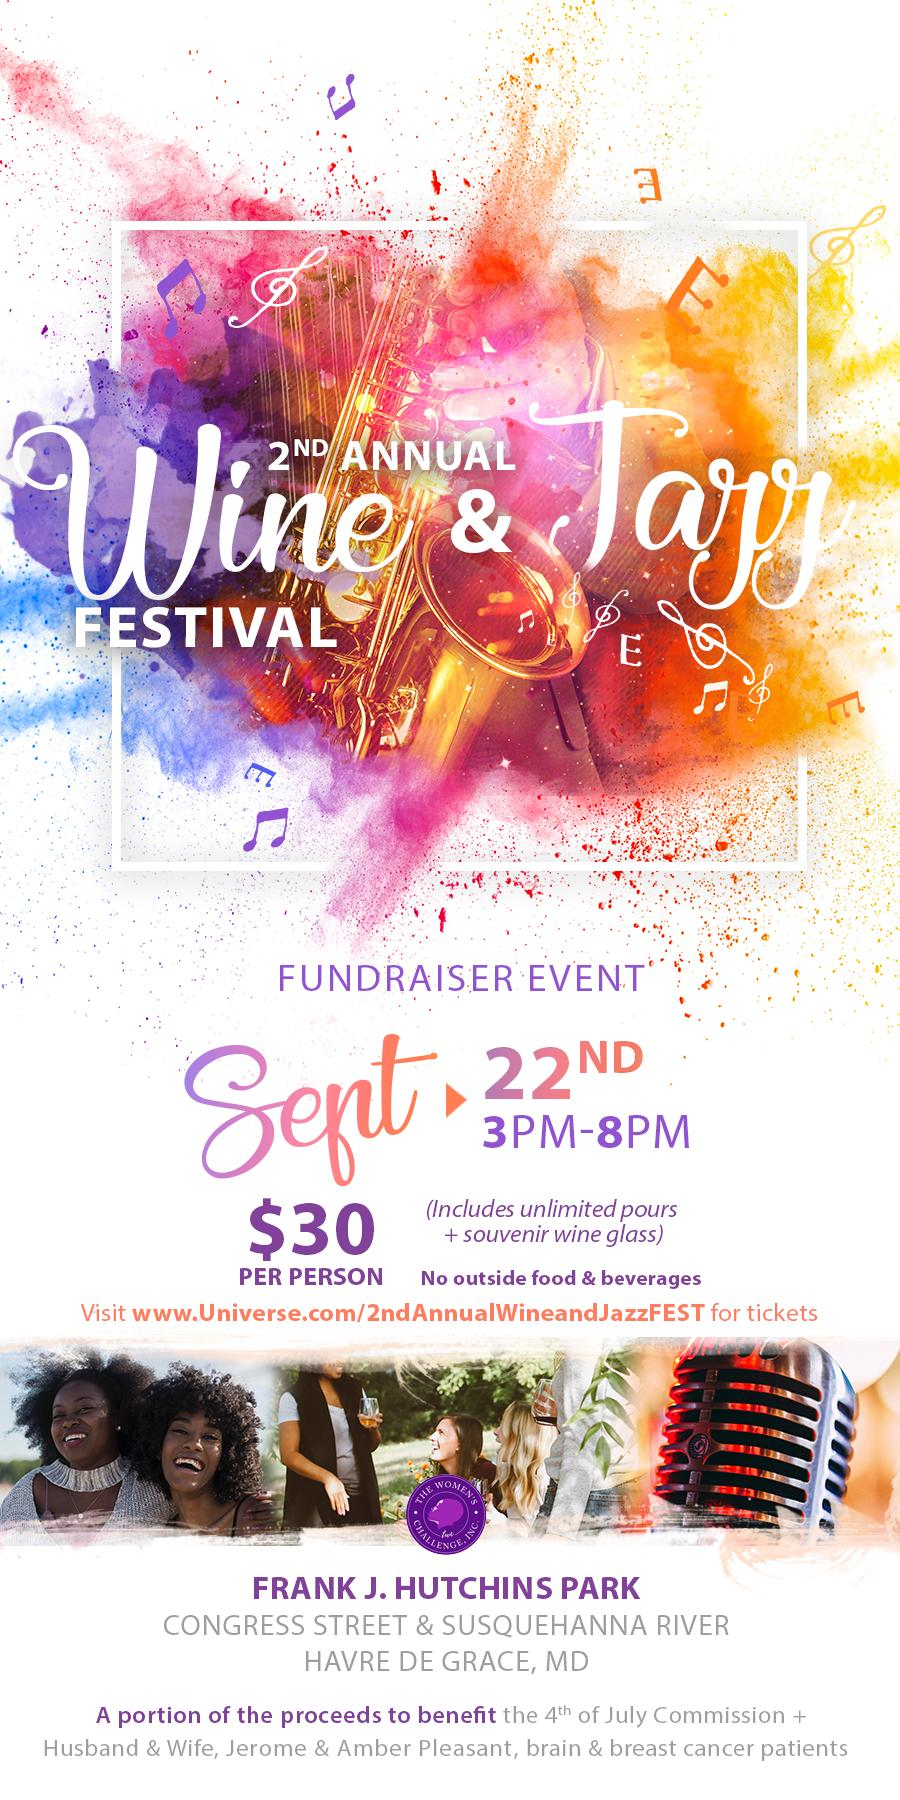 2nd Annual WINE & JAZZ Festival - Events - Universe